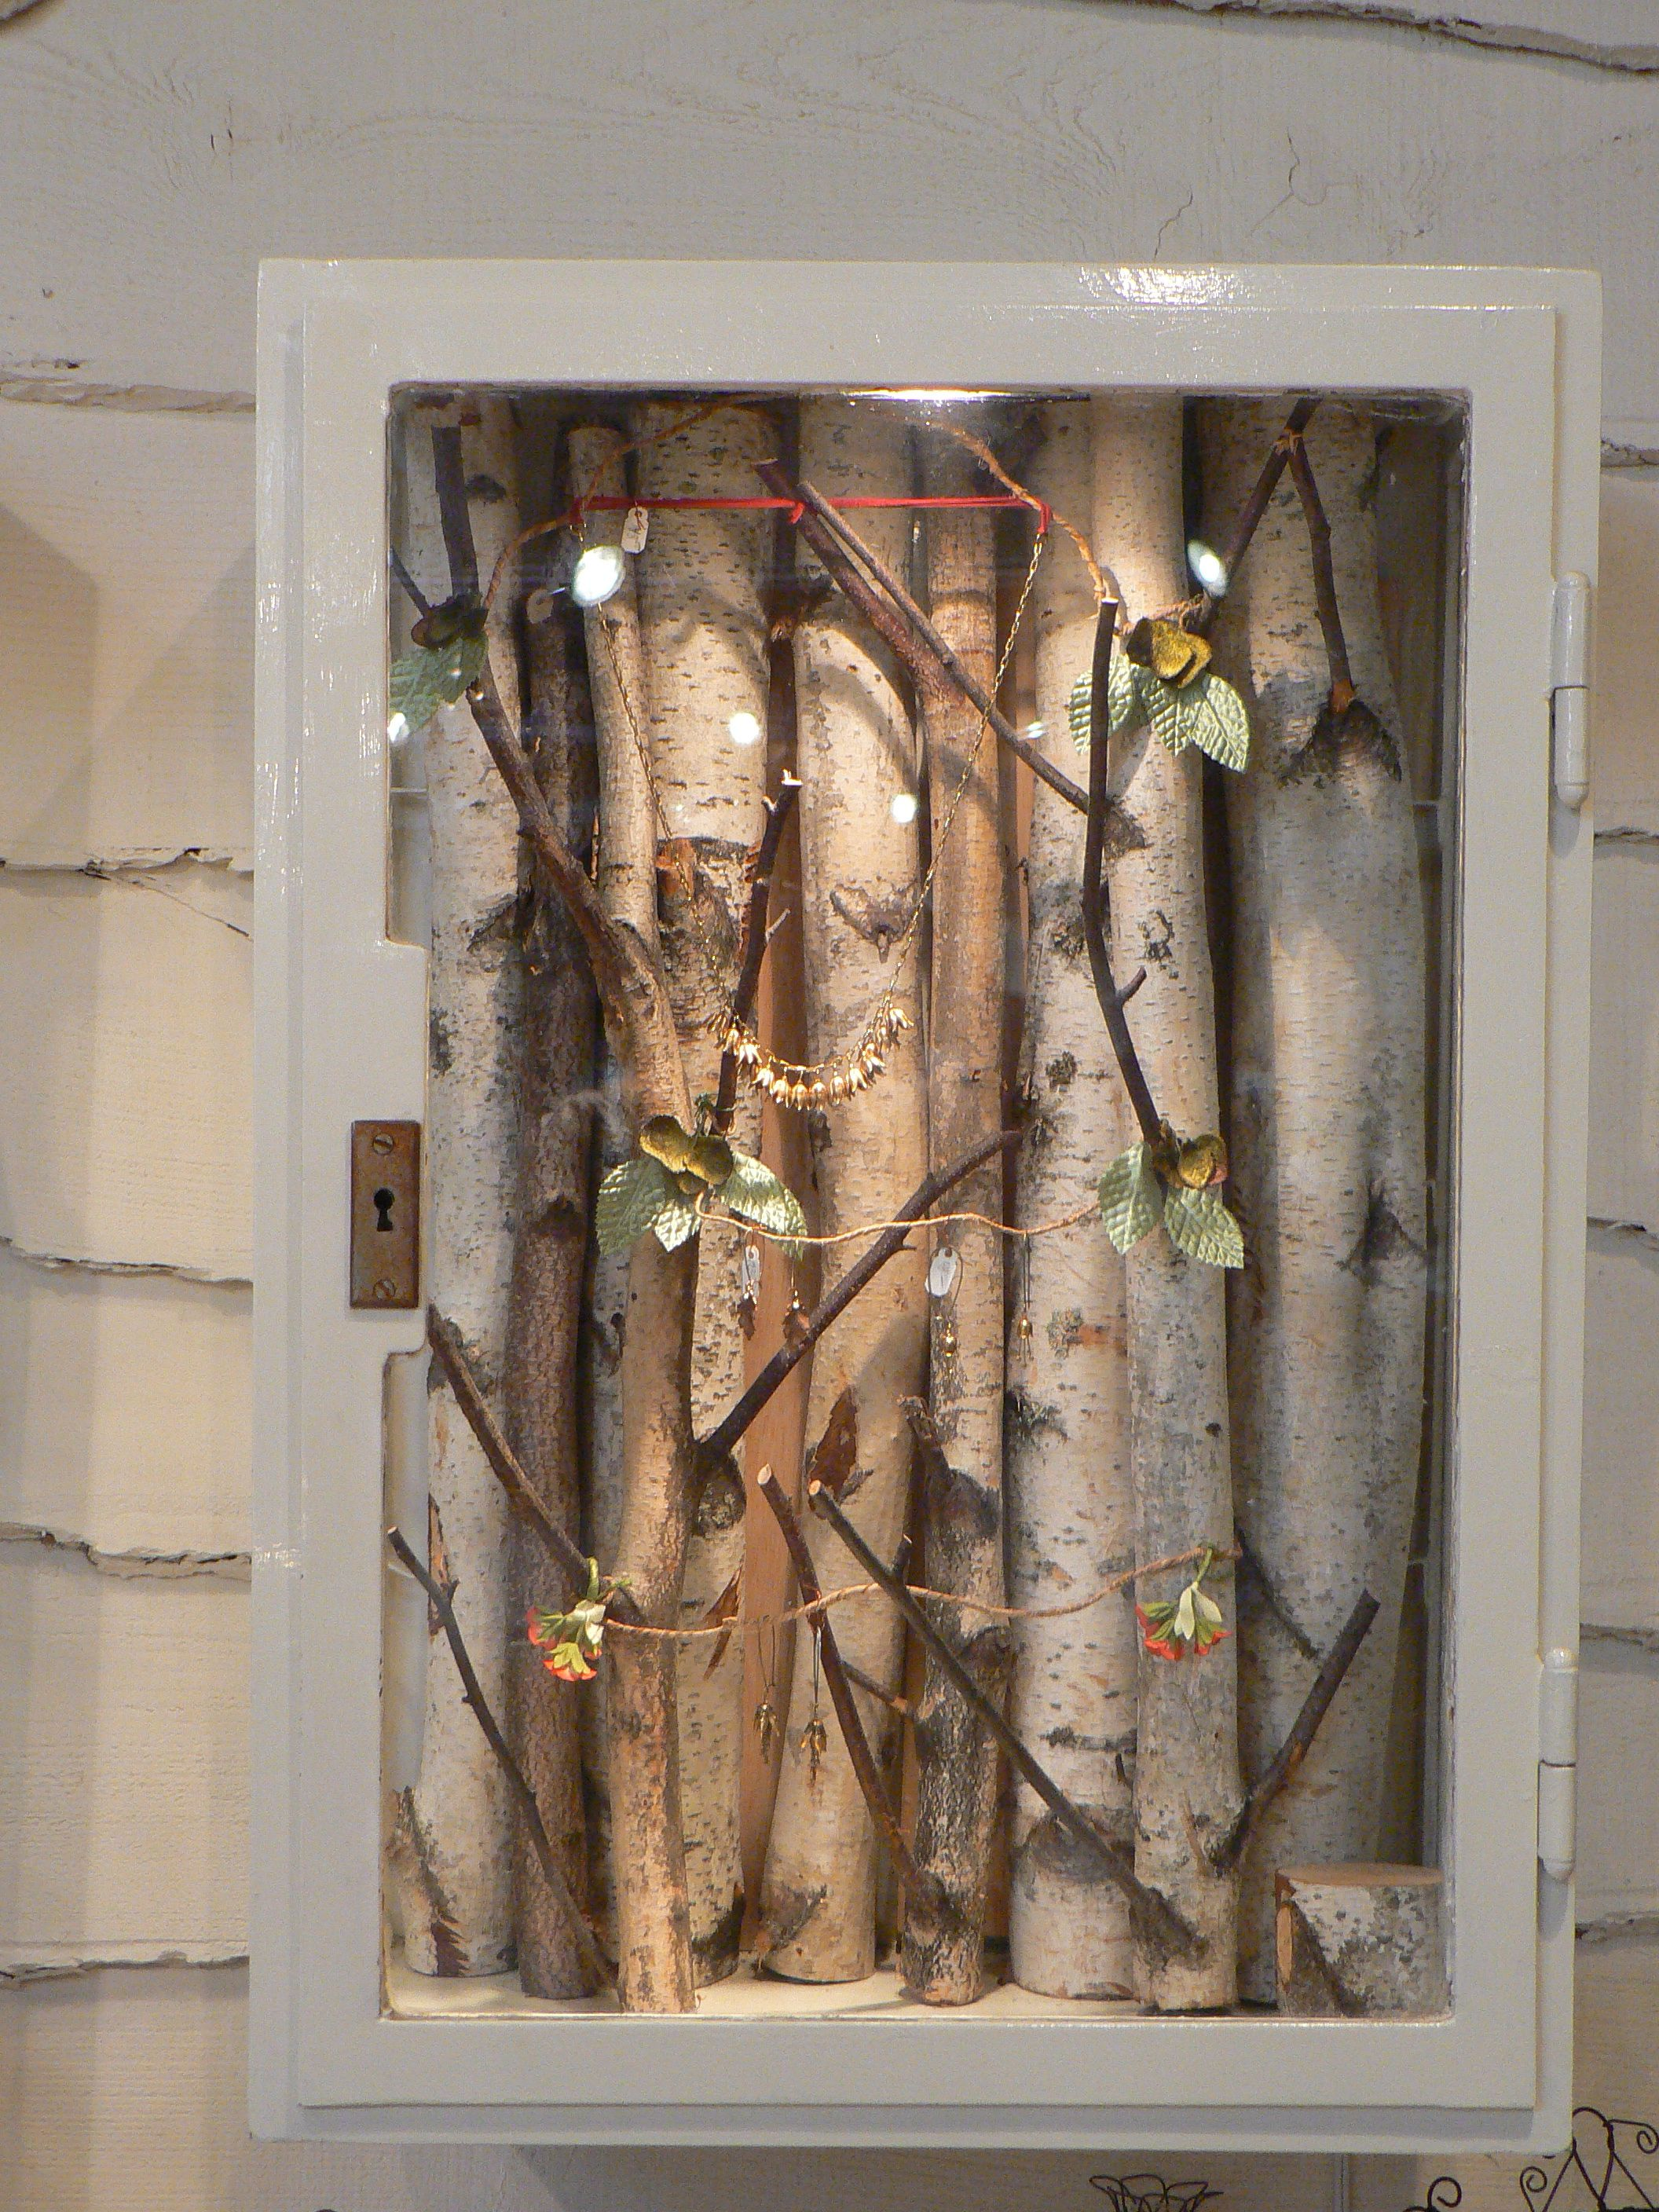 Shadow Box Display Case With Birch Twigs Used To Hold Jewelry Jewerly Display Cases Jewerly Displays Shadow Box Display Case